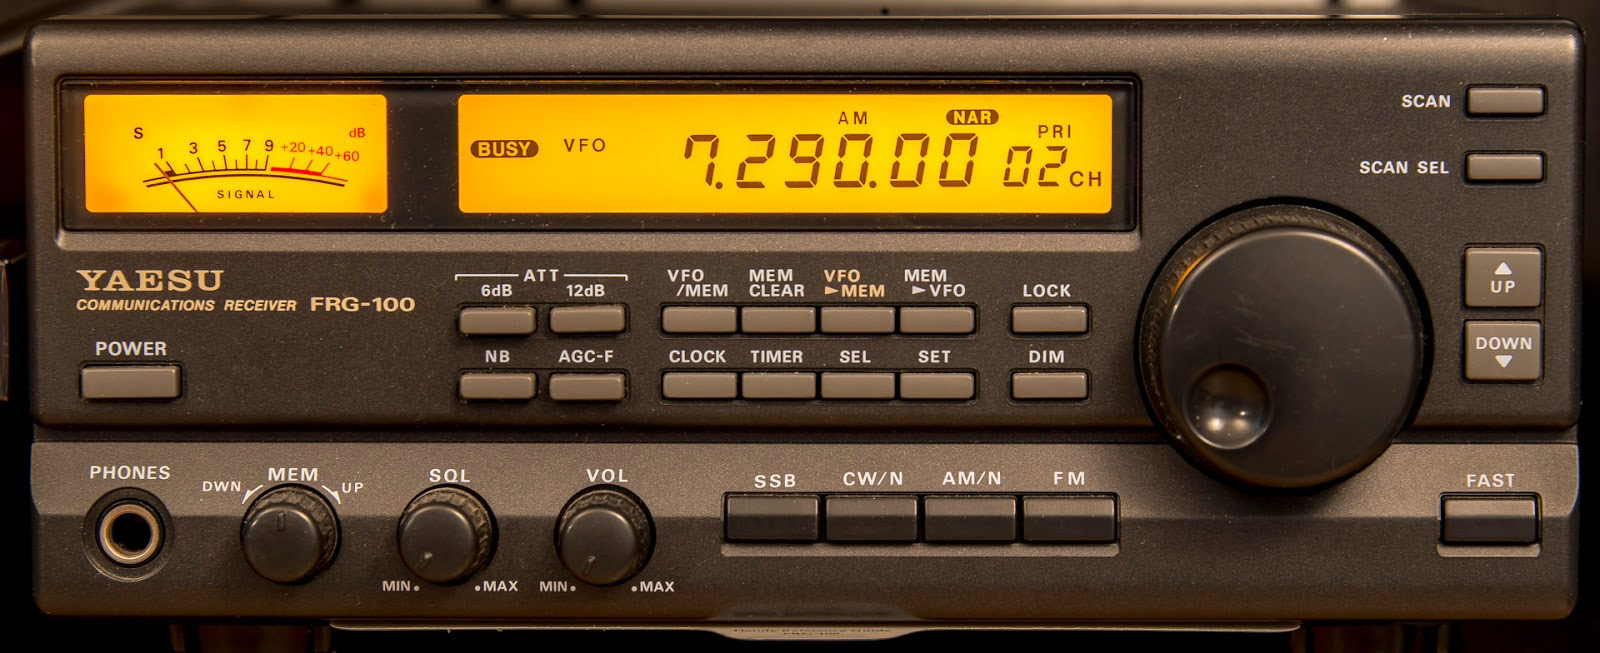 Retro receiver review 12 the yaesu frg 100 mount evelyn dx report retro receiver review 12 gumiabroncs